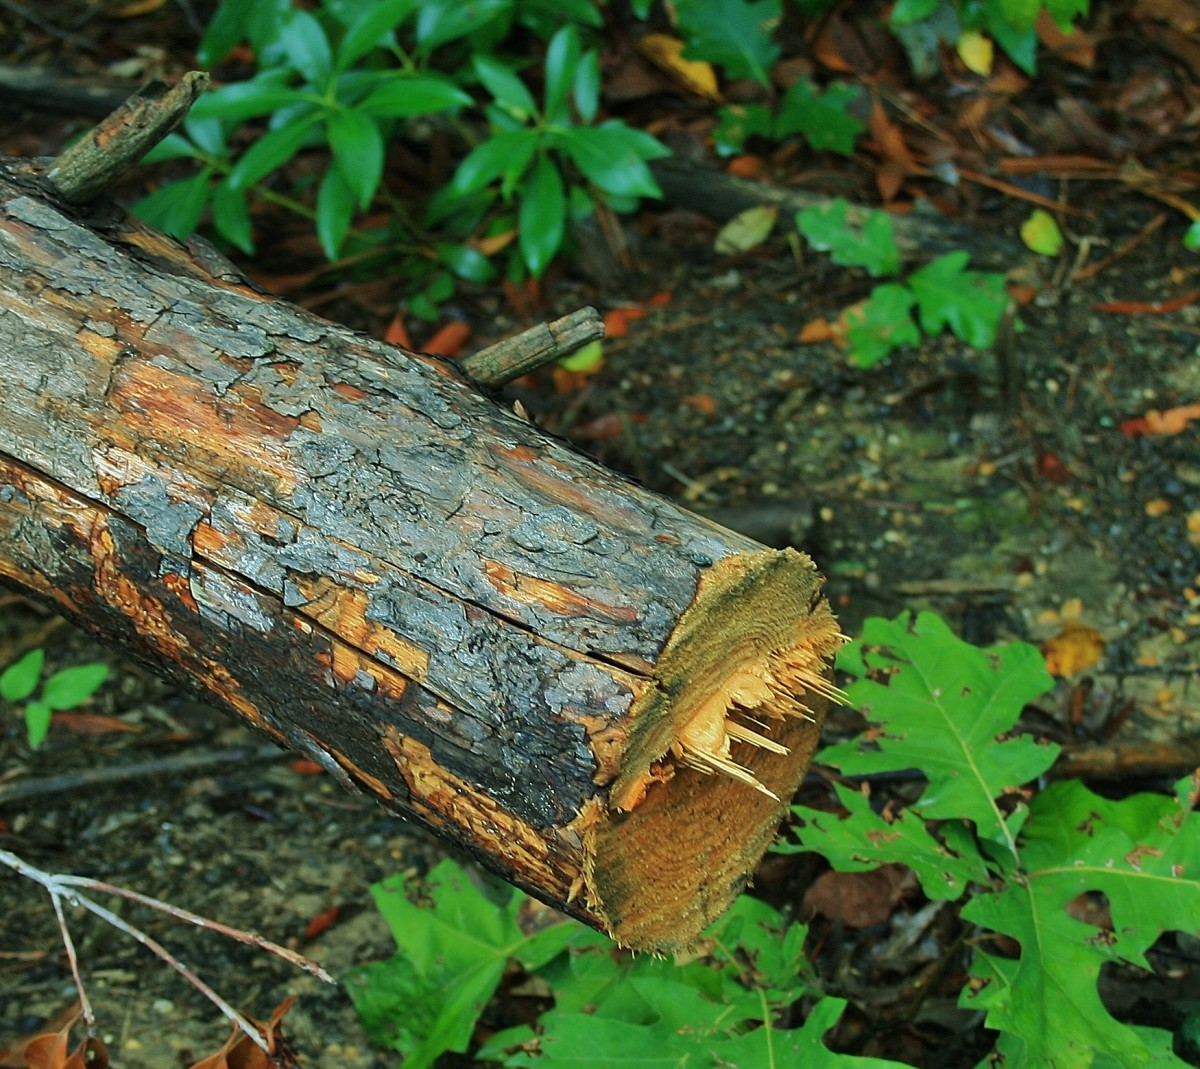 Storm damaged trees are a good source of wood for stumperies. This broken limb is in the process of being cut up.